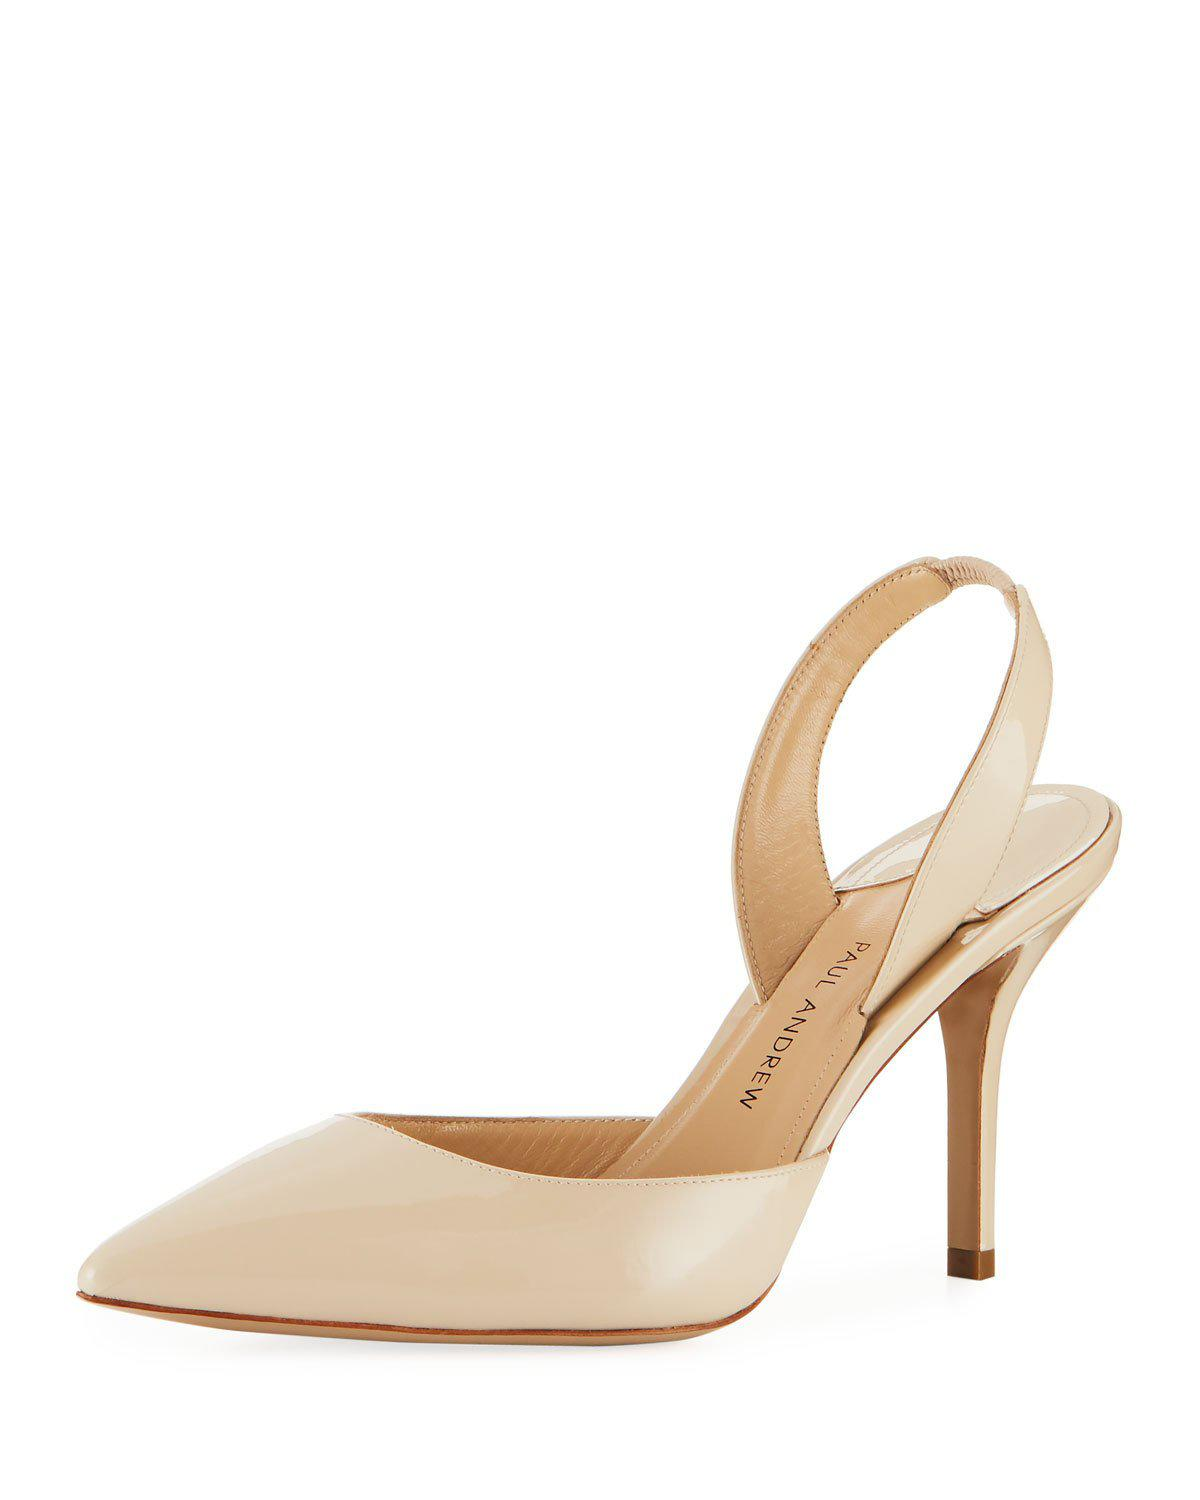 Paul Andrew Mid-Heel Leather Slingback Pumps In Sand